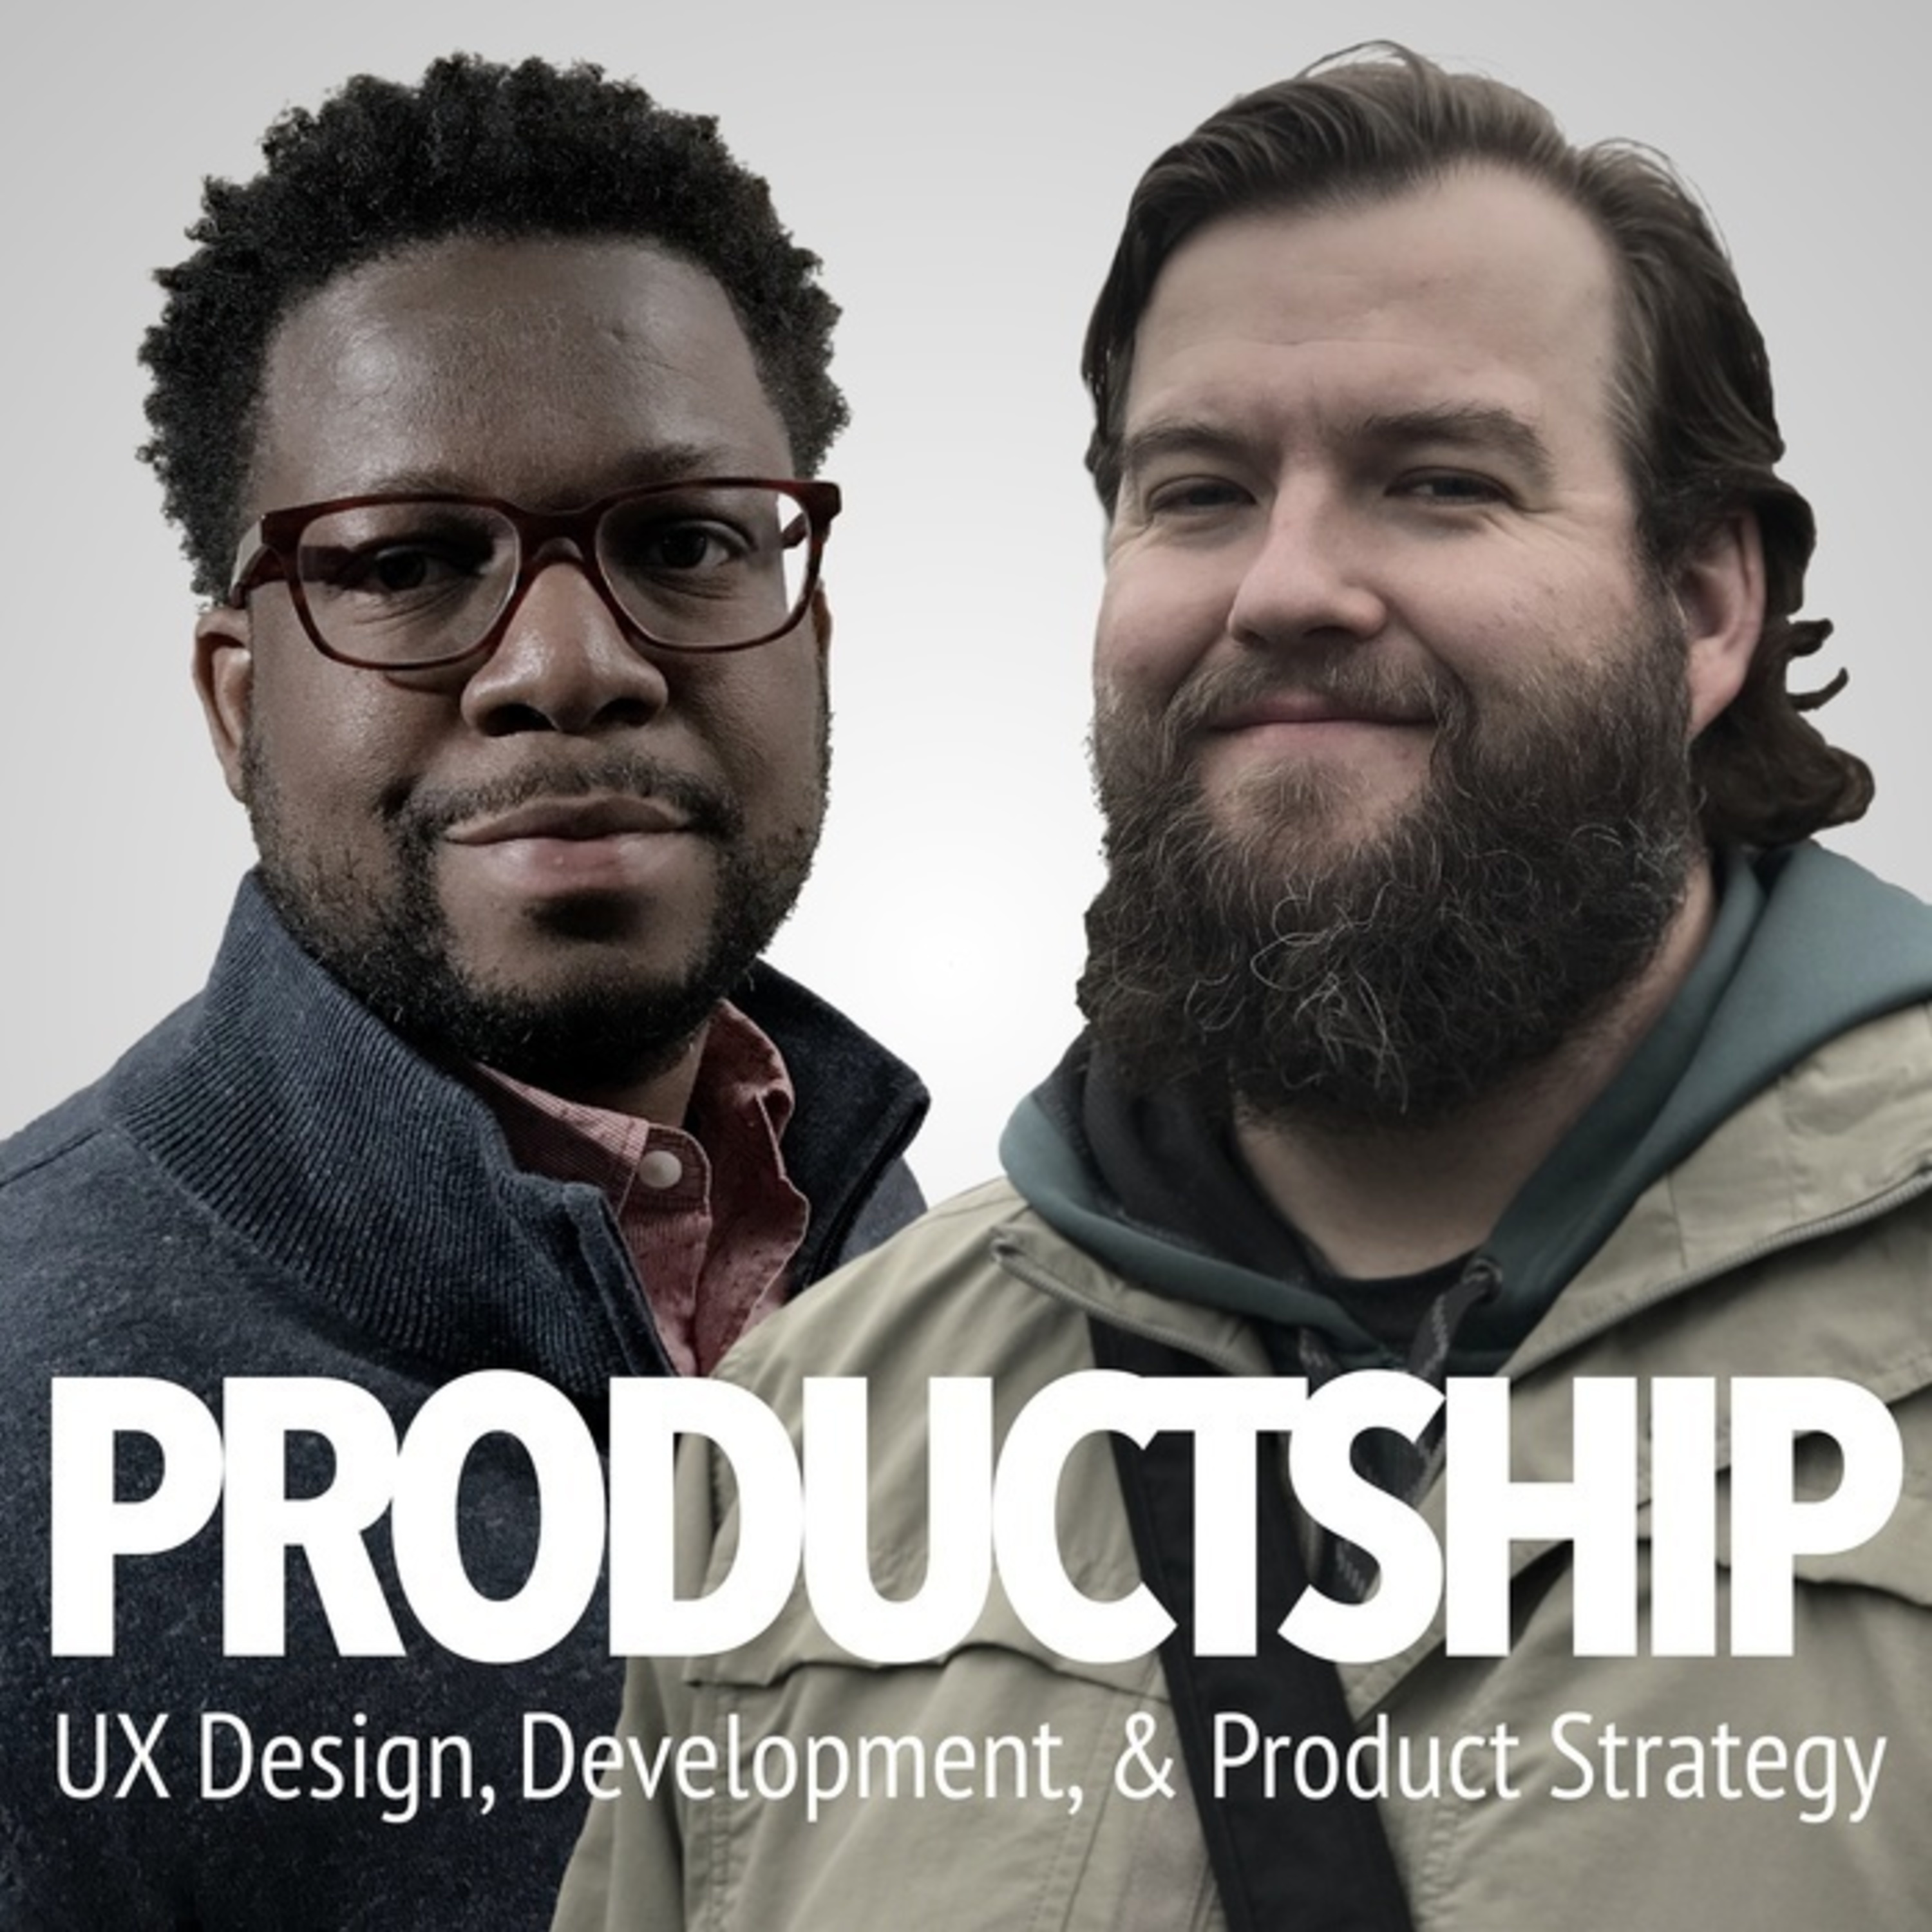 Ep 6: Trust on Product Development Teams